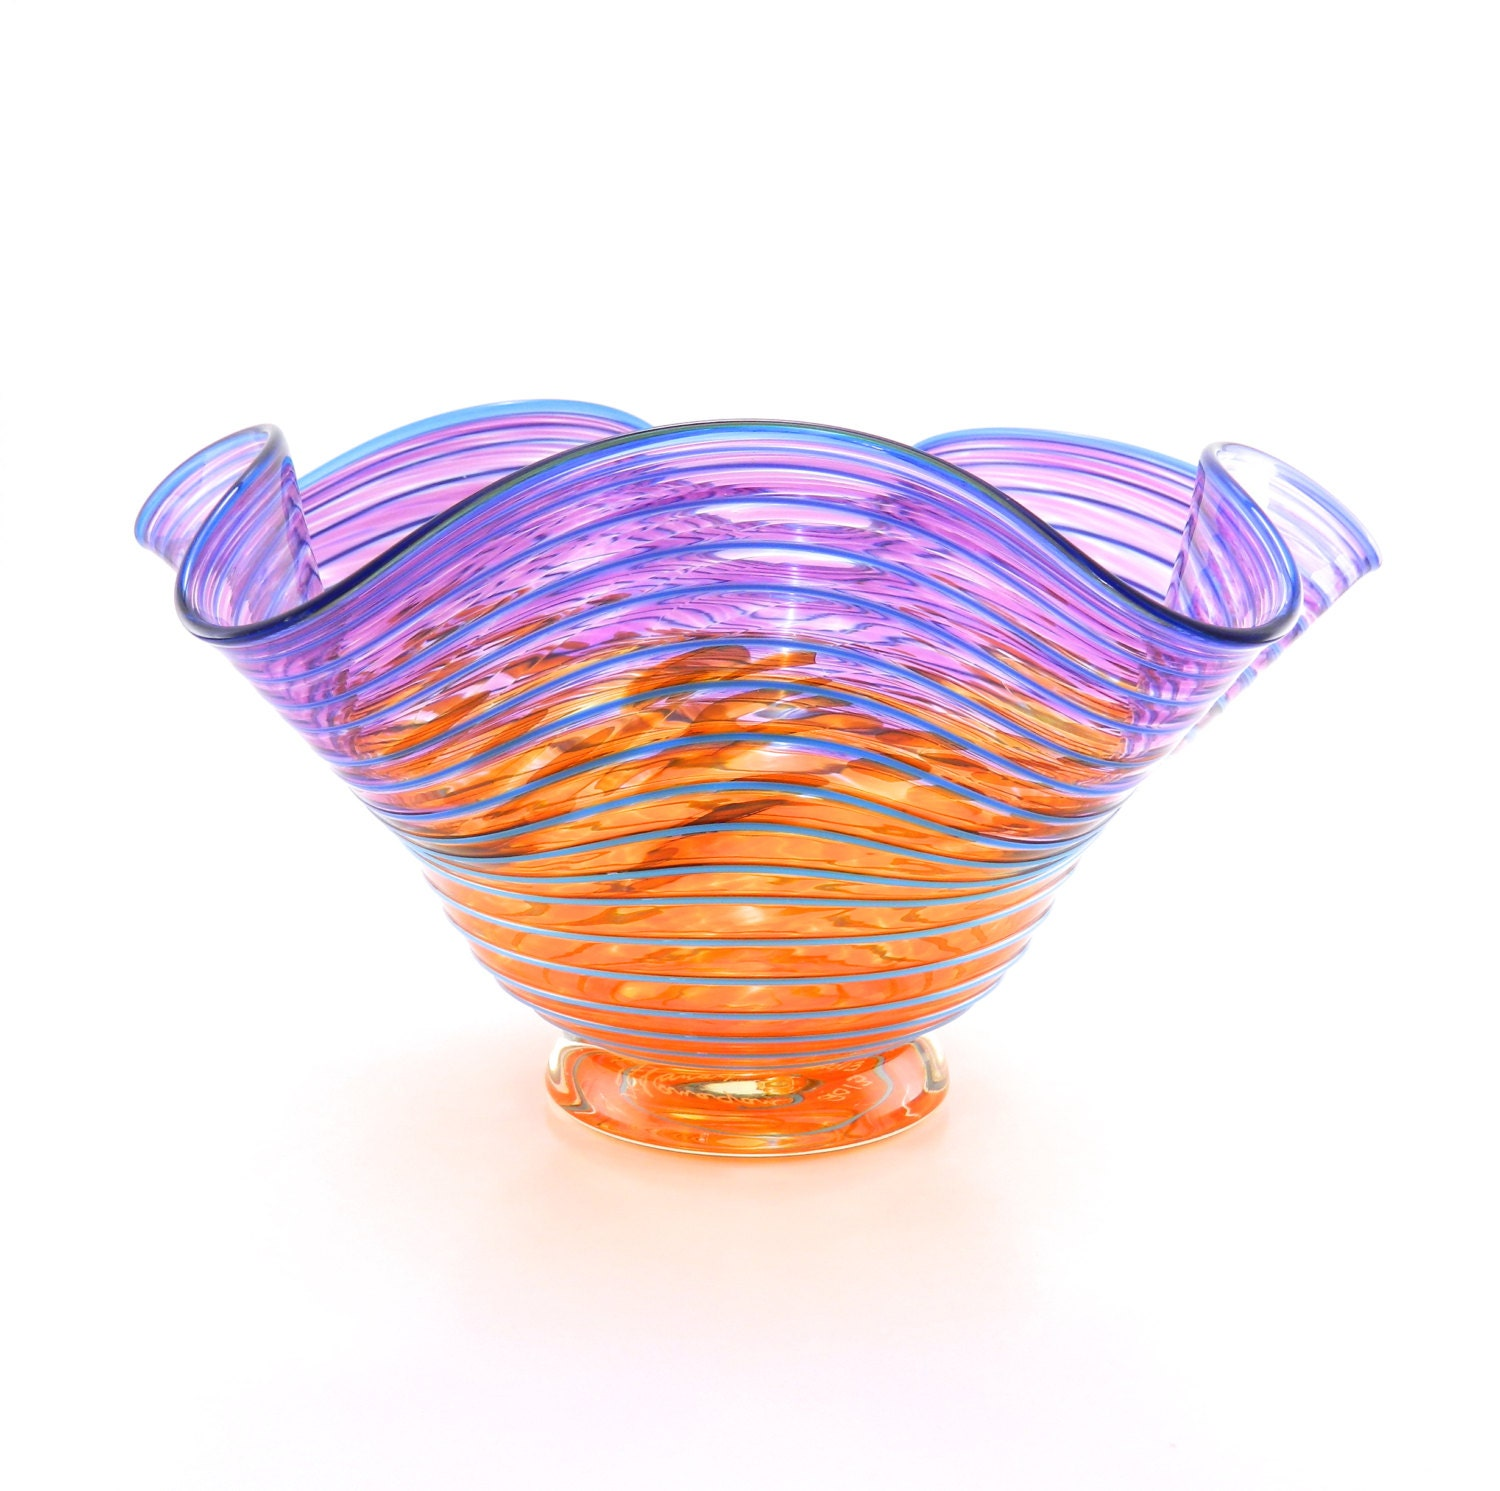 Hand Blown Art Glass Bowl - LARGE - Purple, Orange, and Aqua Blue - Fluted - Freeform - Wavy - Sunset - Tropical - ParadiseArtGlass